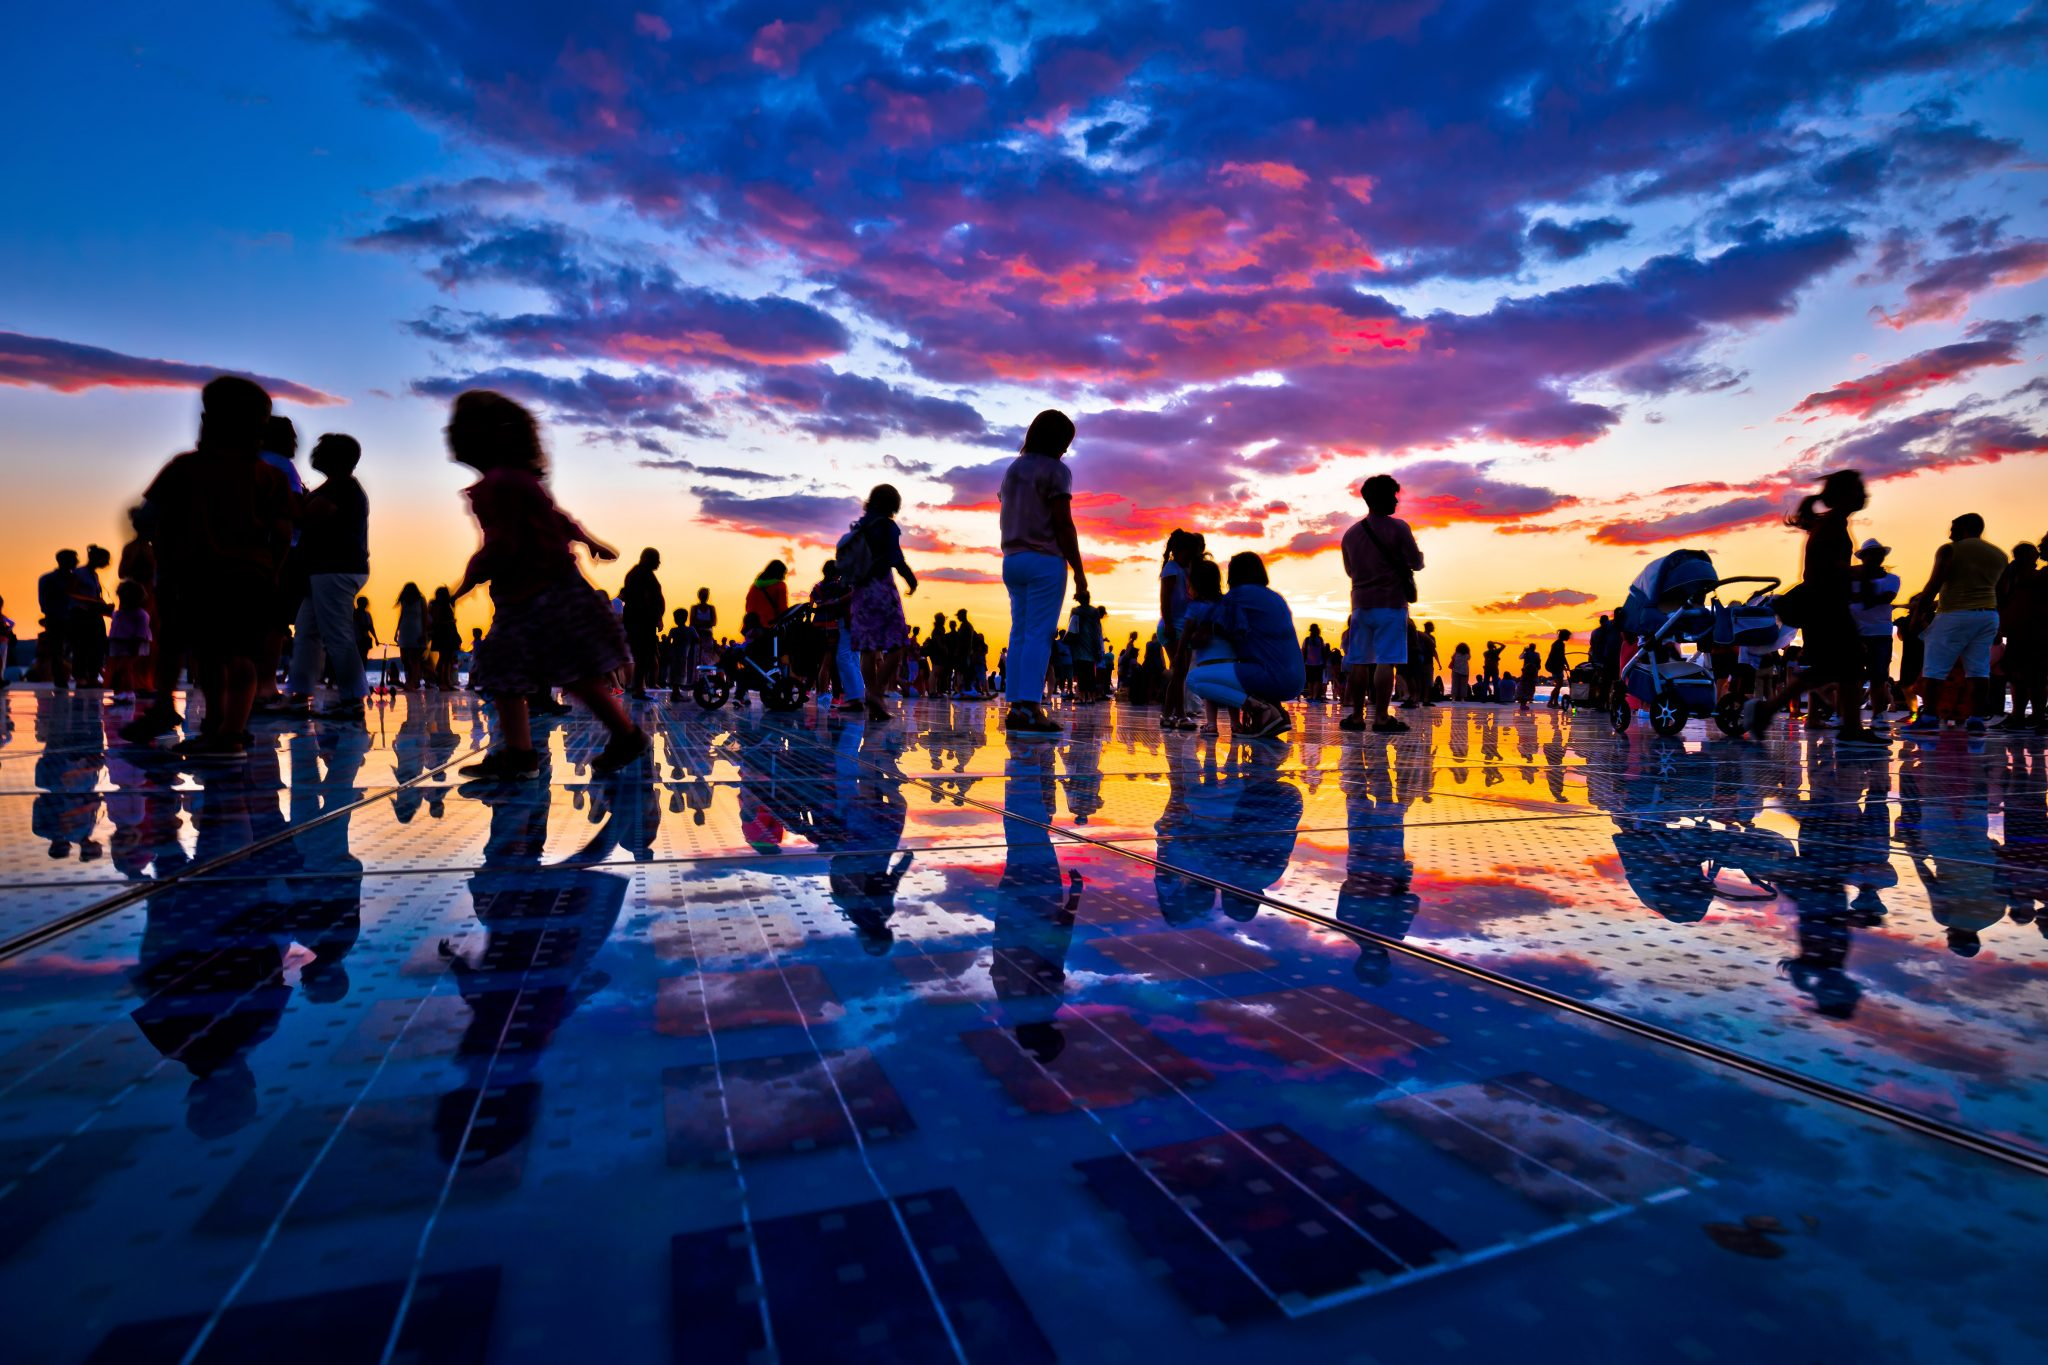 crowd of people at sunset in zadar croatia during a purple and orange sunset